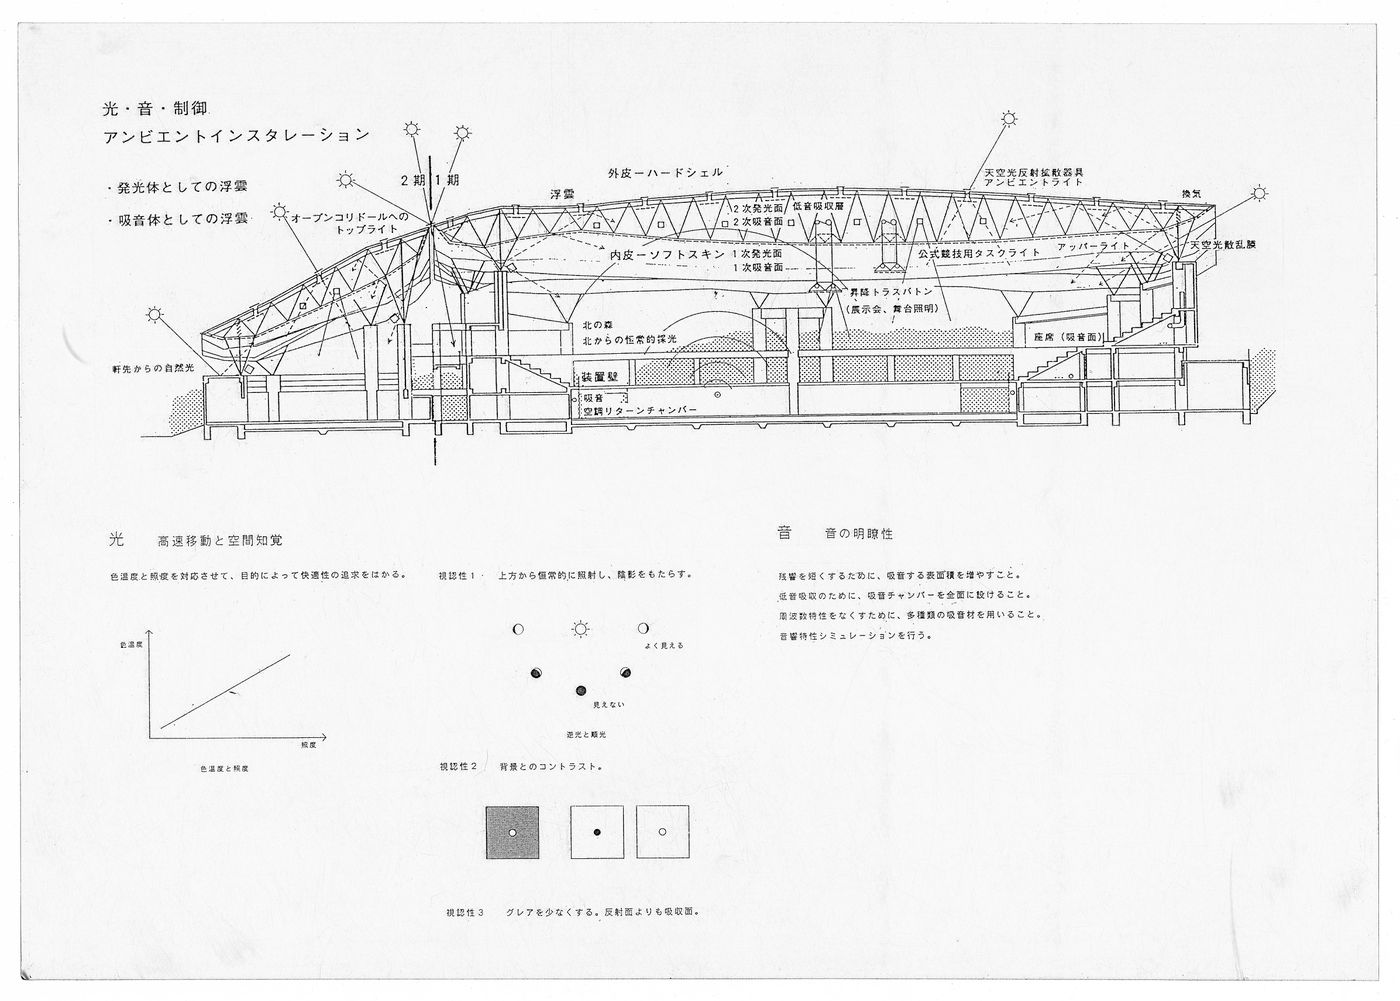 Section showing lighting and acoustic surfaces and light sources, Odawara Municipal Sports Complex, Odawara, Kanagawa, Japan